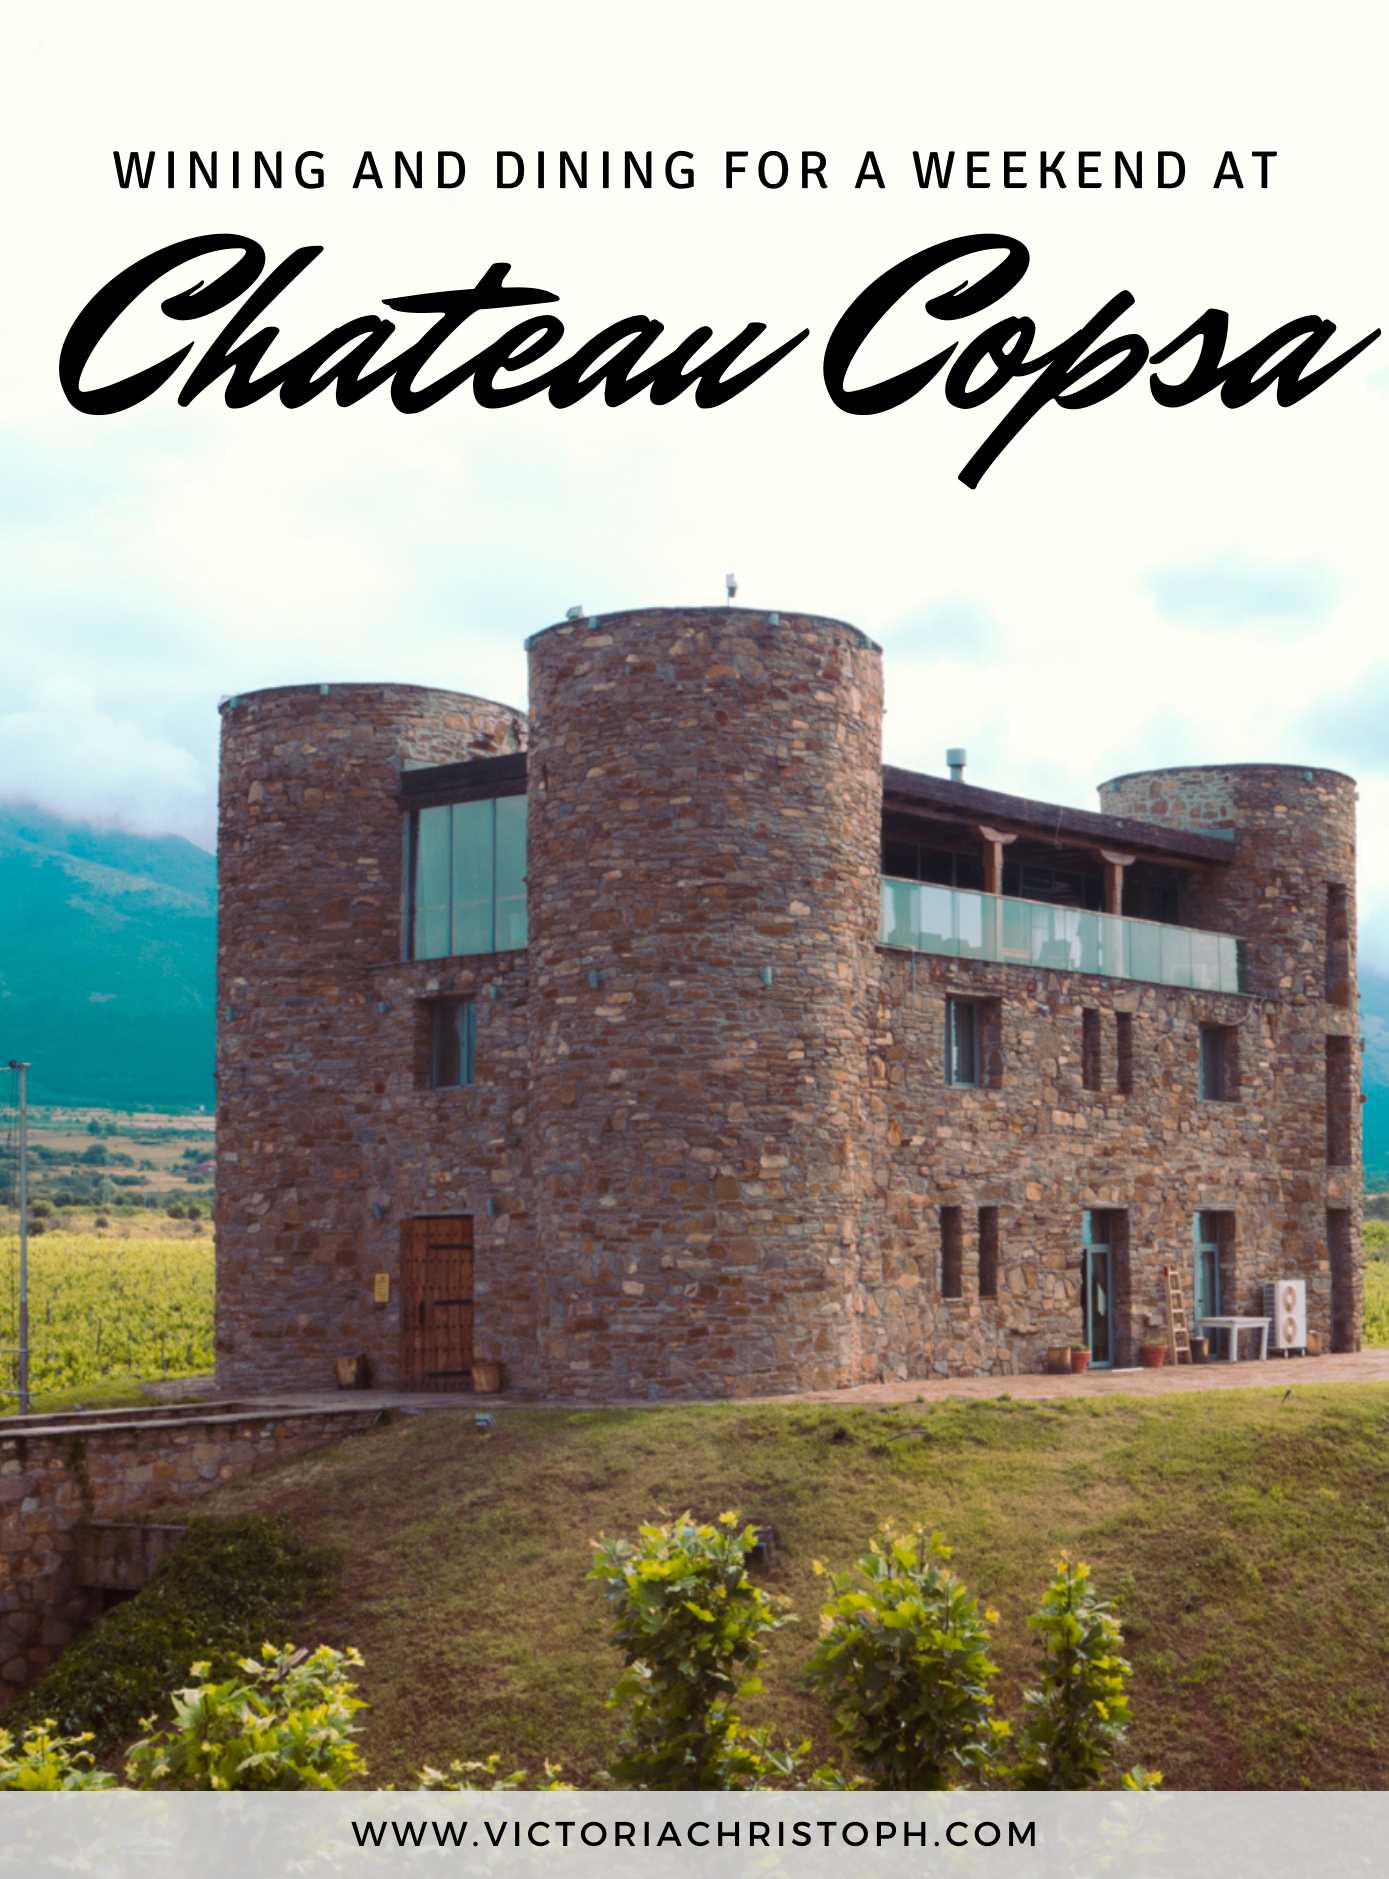 Wining and Dining at Chateau Copsa for a weekend